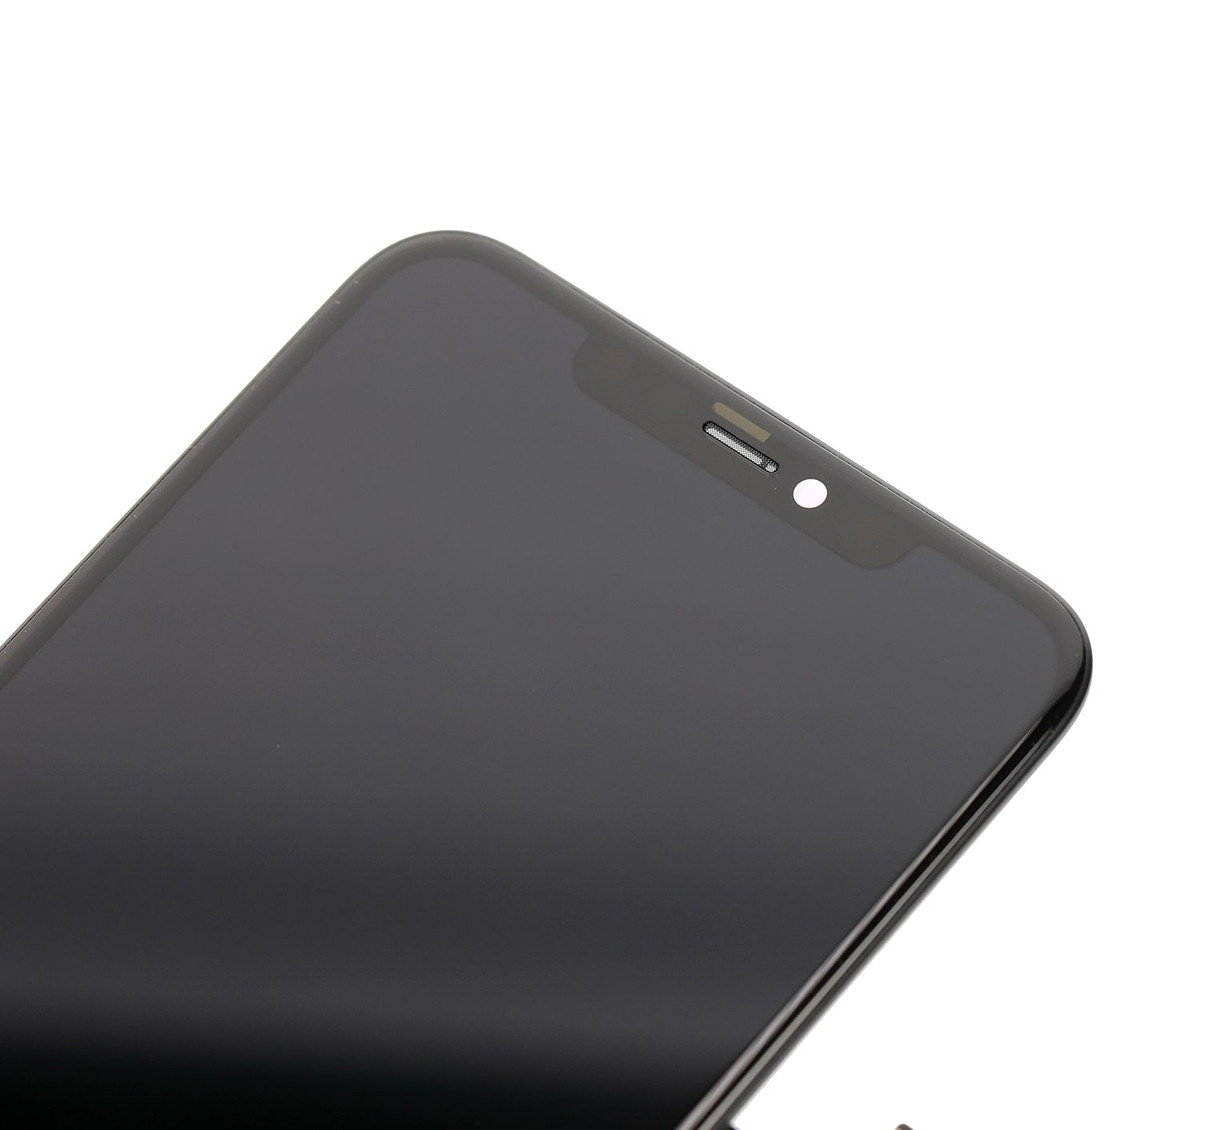 Apple iPhone 11 Pro Max A2218 Display Module Black Compatible Plus OLED Soft